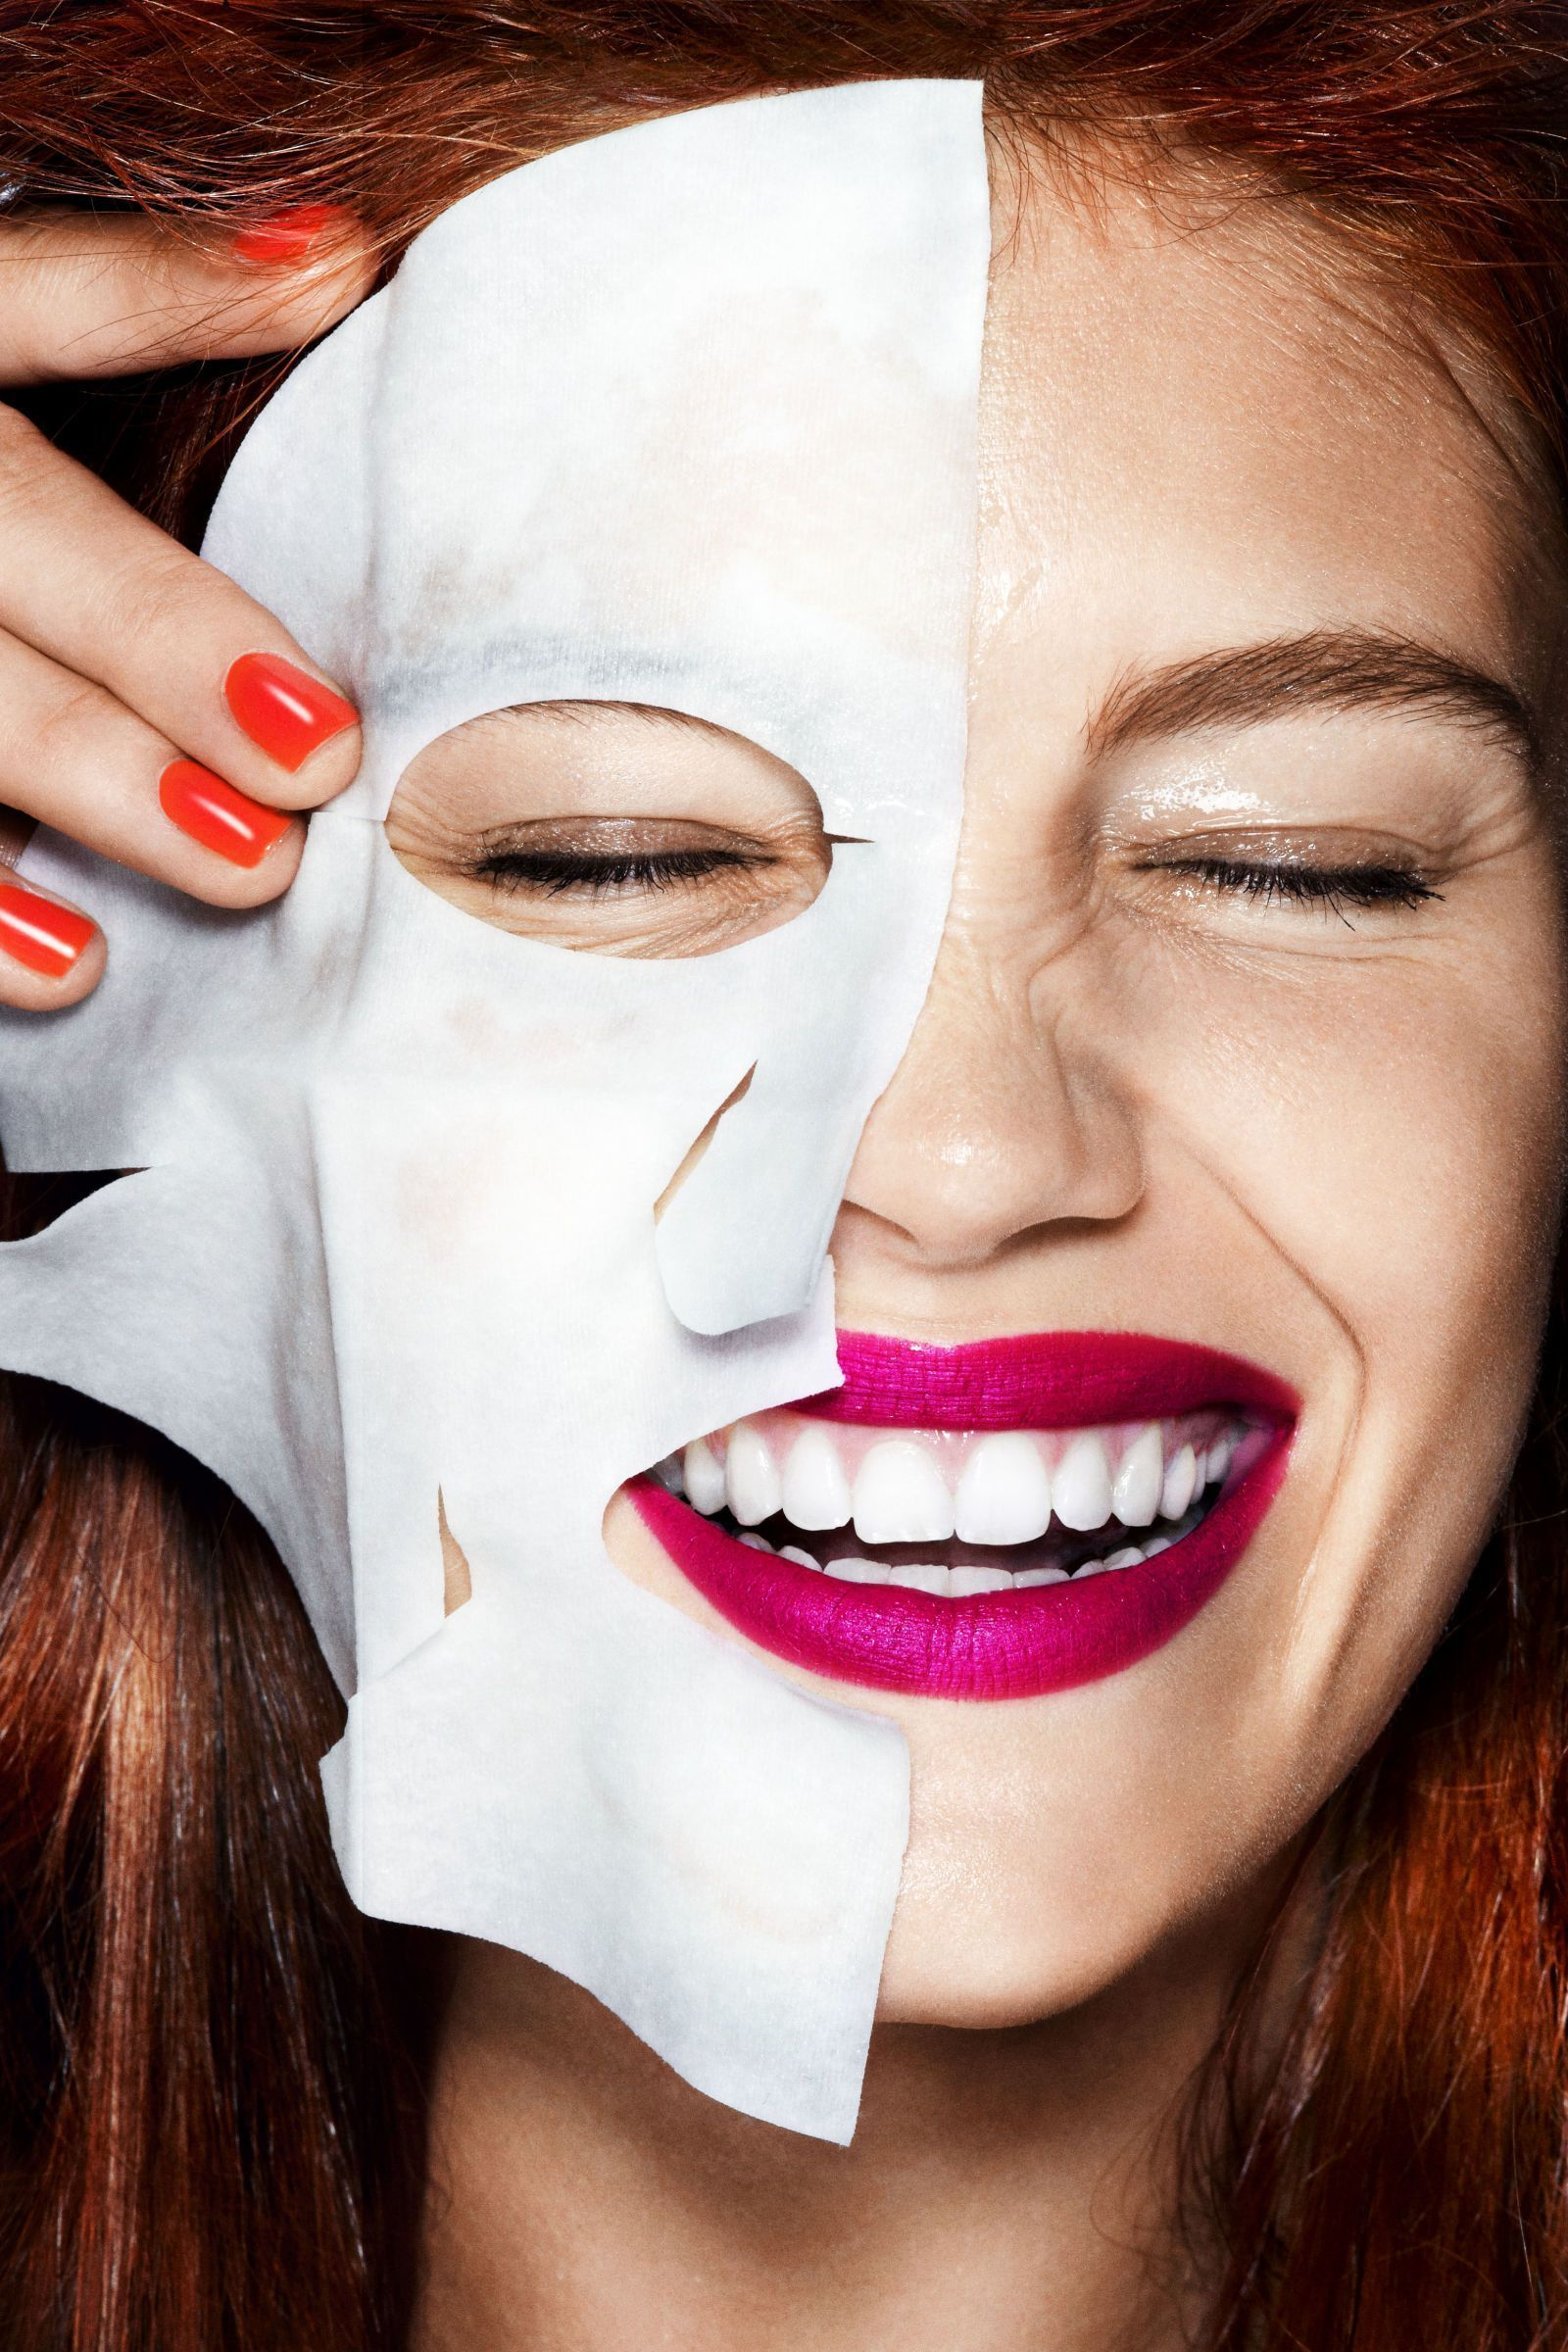 What's a sheet mask? SkinBrighteningProducts